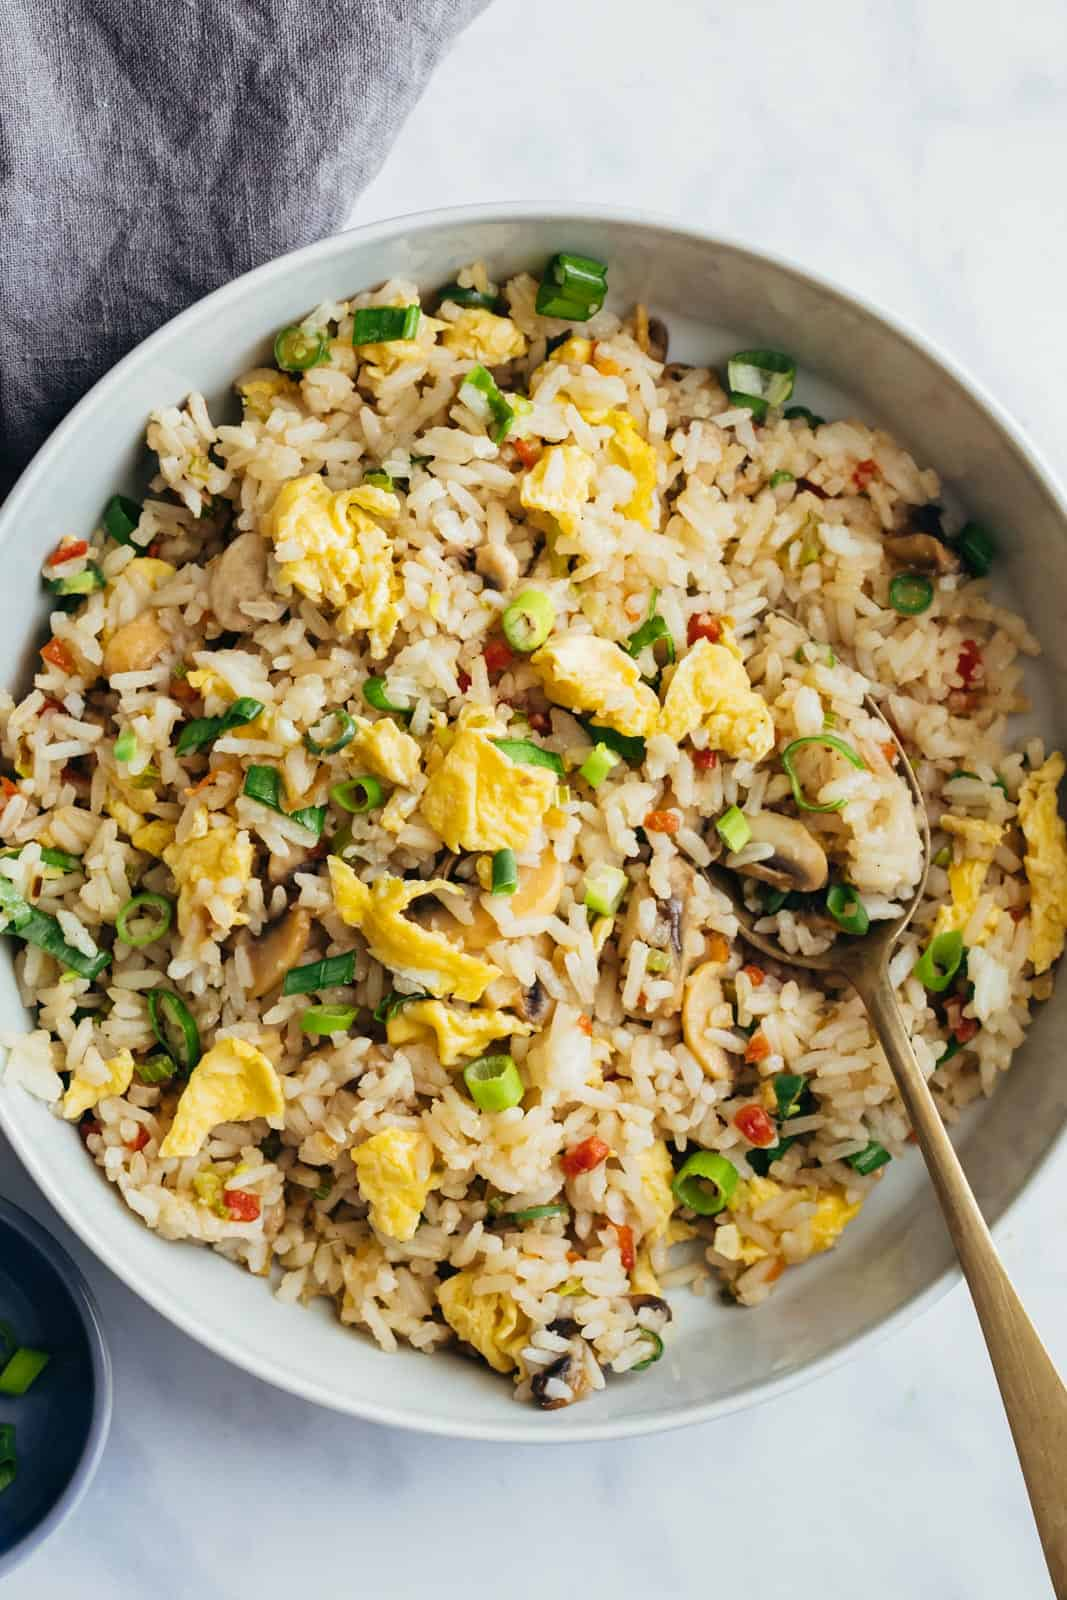 Egg Fried rice served in a bowl with a spoon